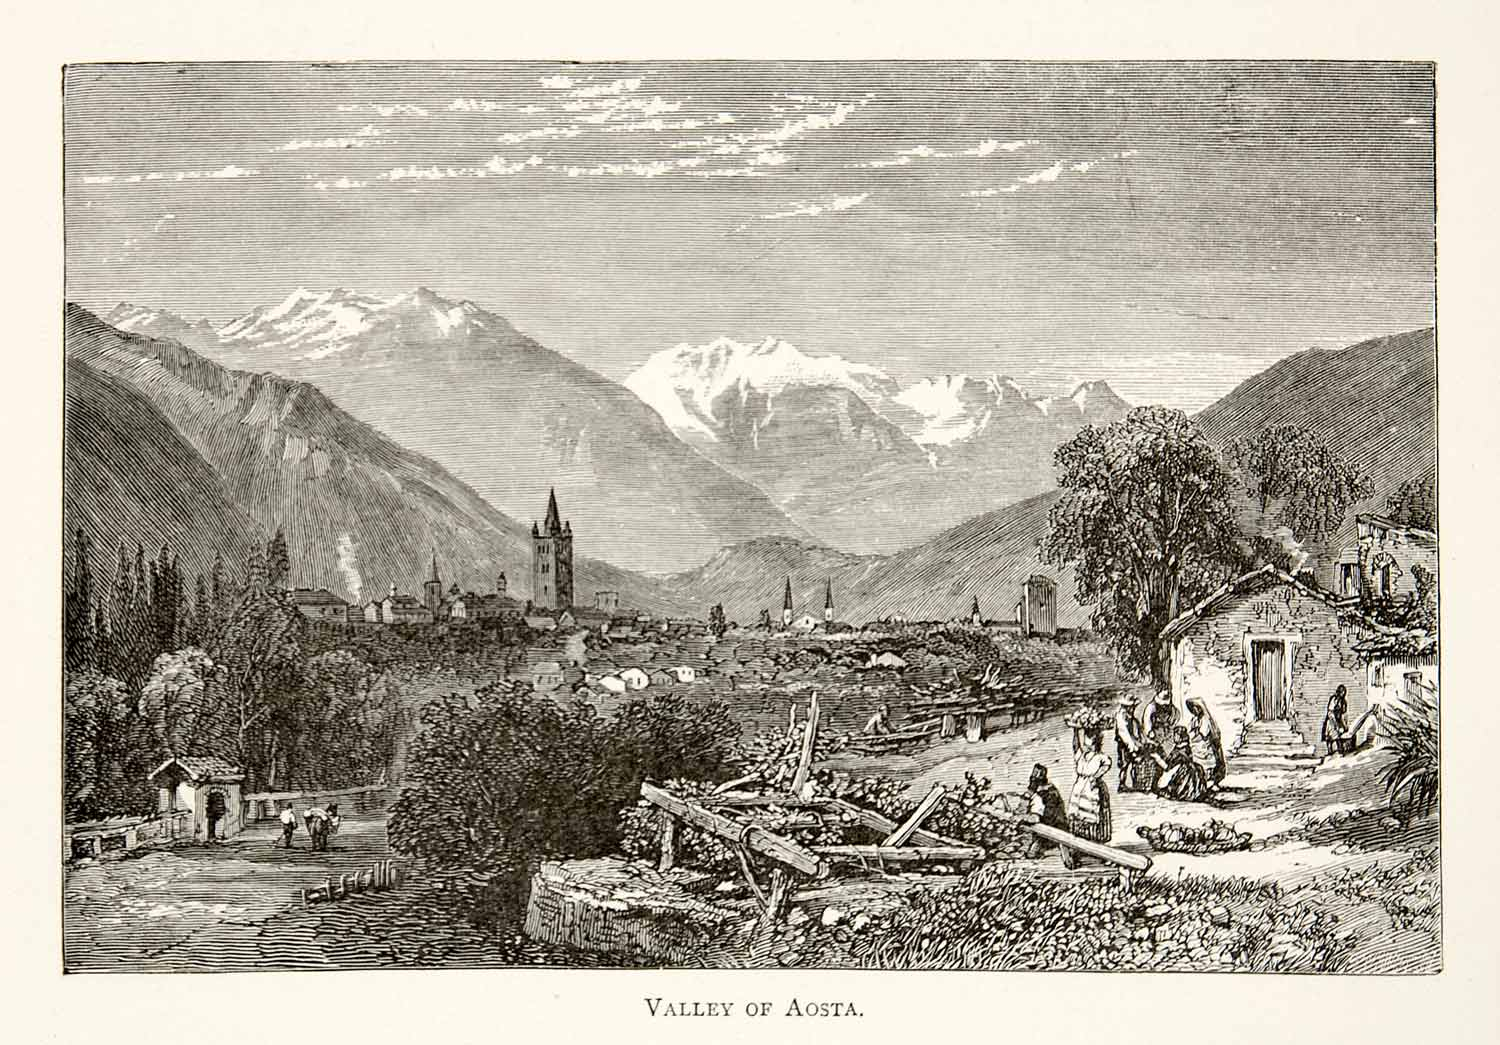 1891 Wood Engraving Aosta Valley Italy Alps Mountains Village Landscape XGSB1